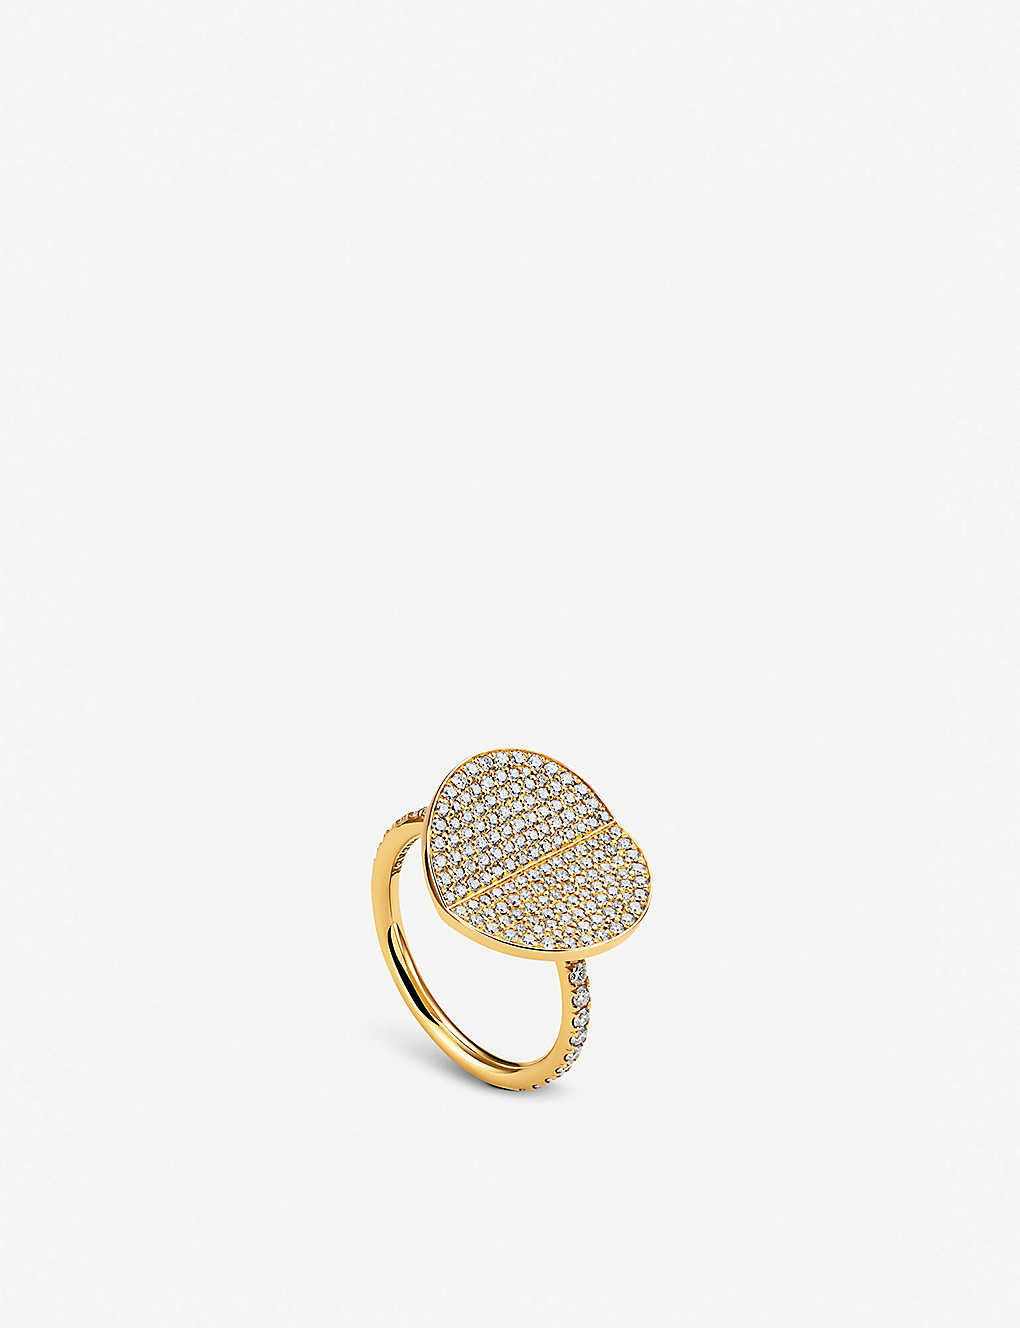 B-dimensions yellow-gold and diamond large ring